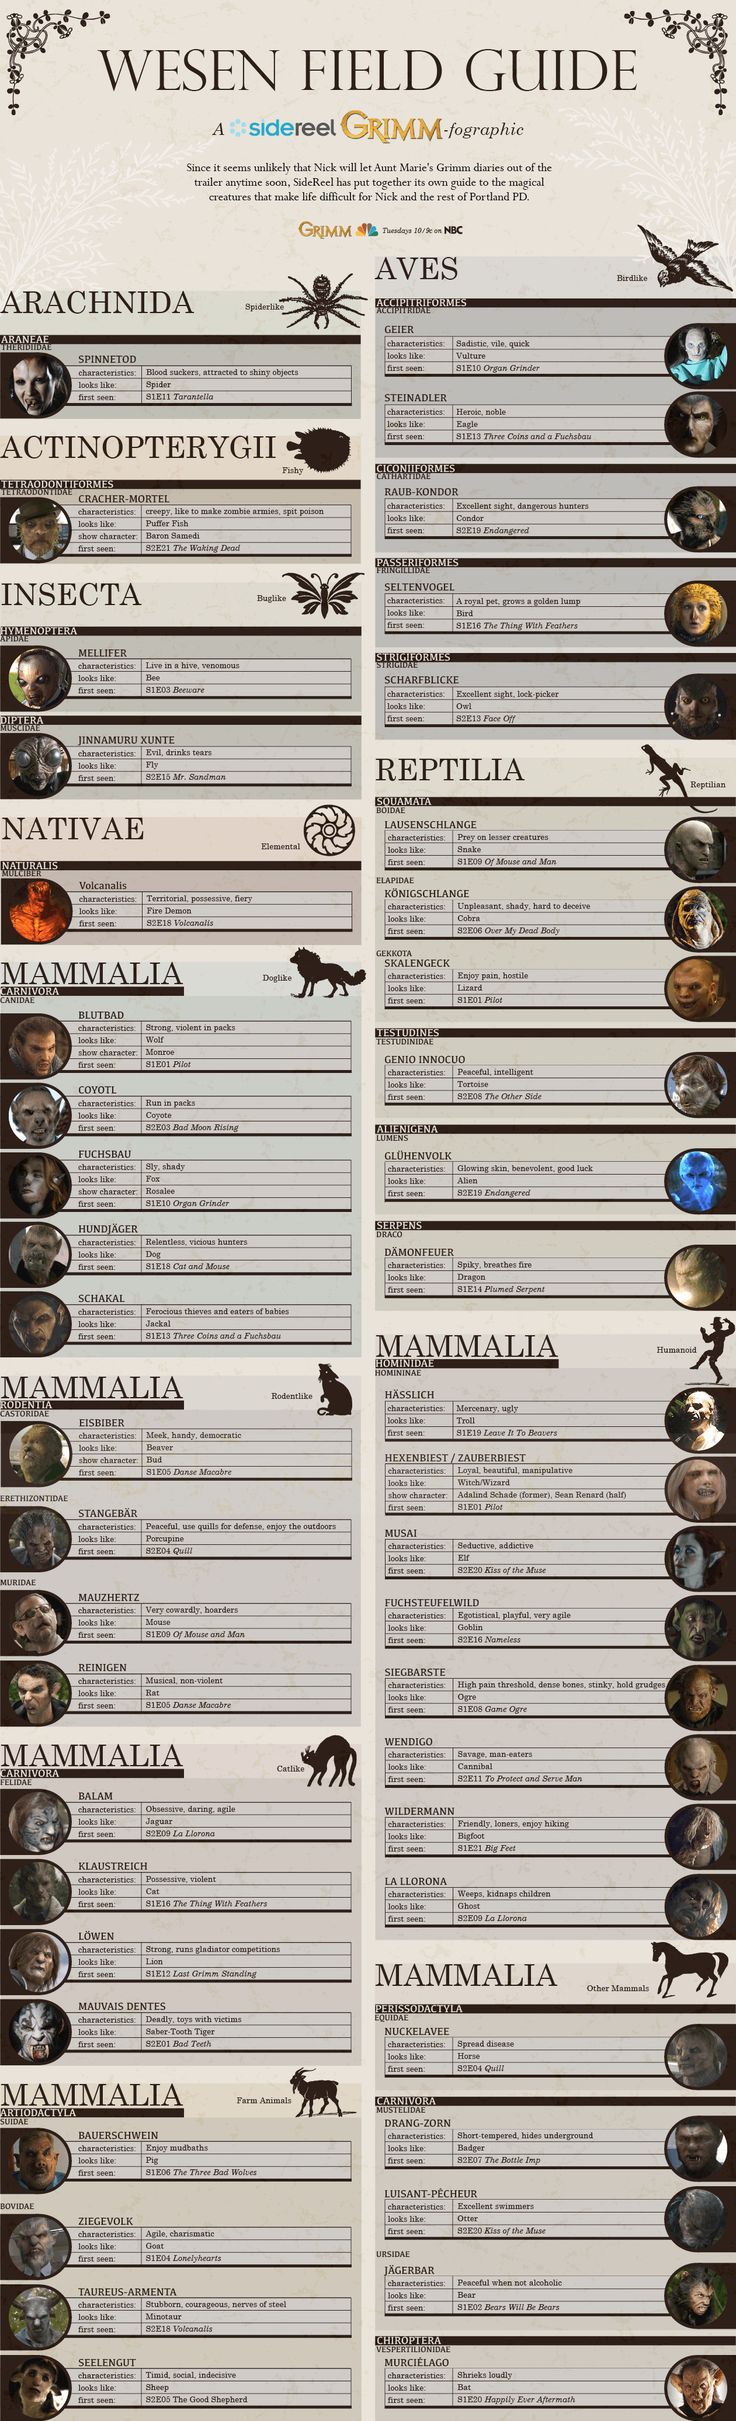 SideReel's Grimm-fographic - The official unofficial Wesen Field Guide #grimm